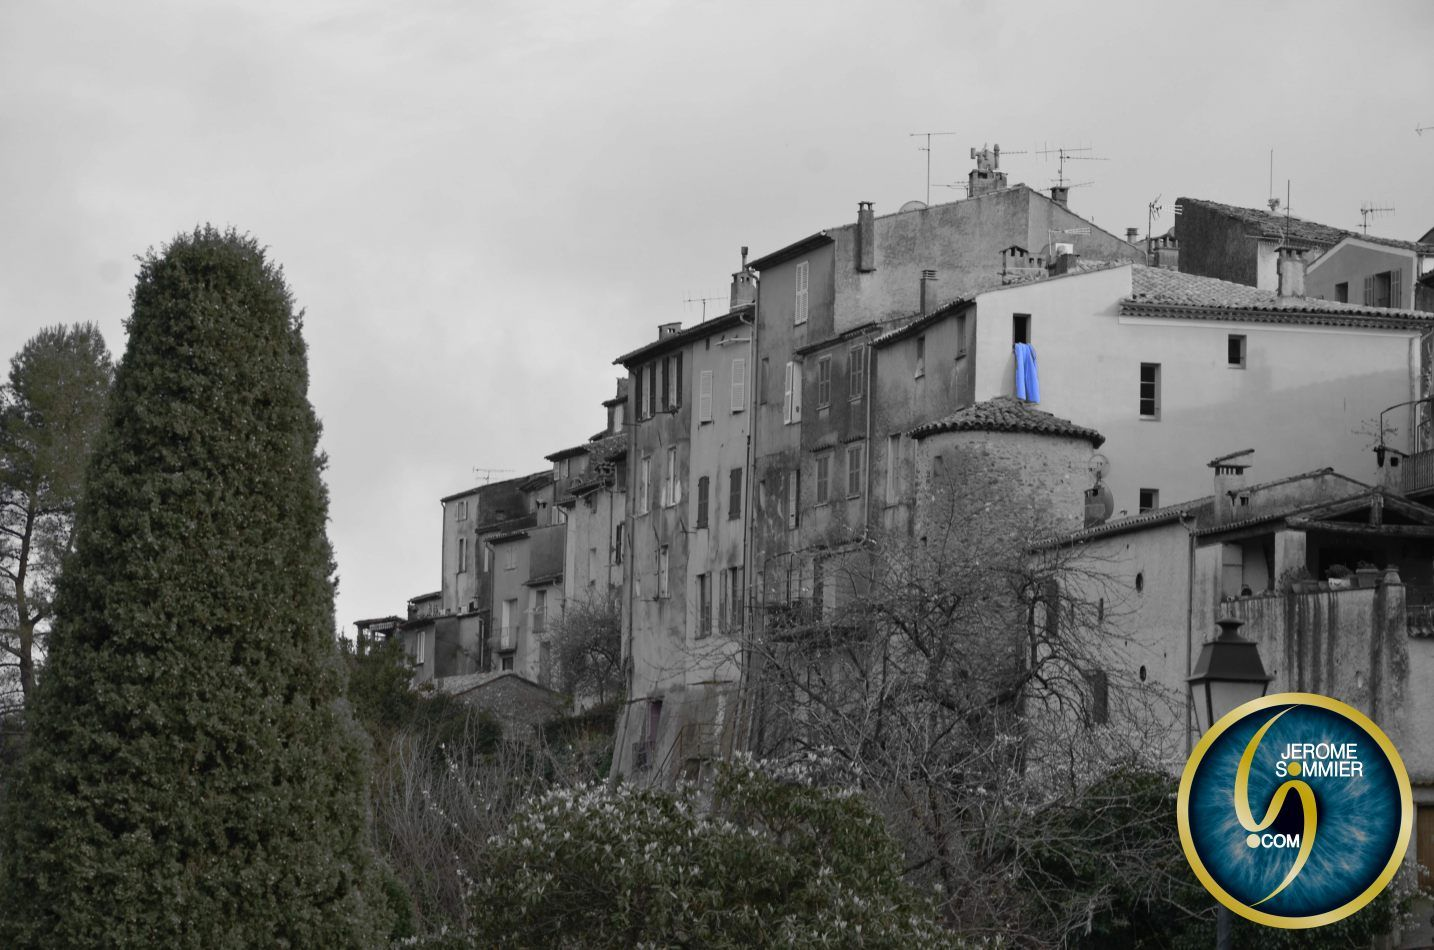 Jerome Sommier Photos - Photo & Graphism: Biot